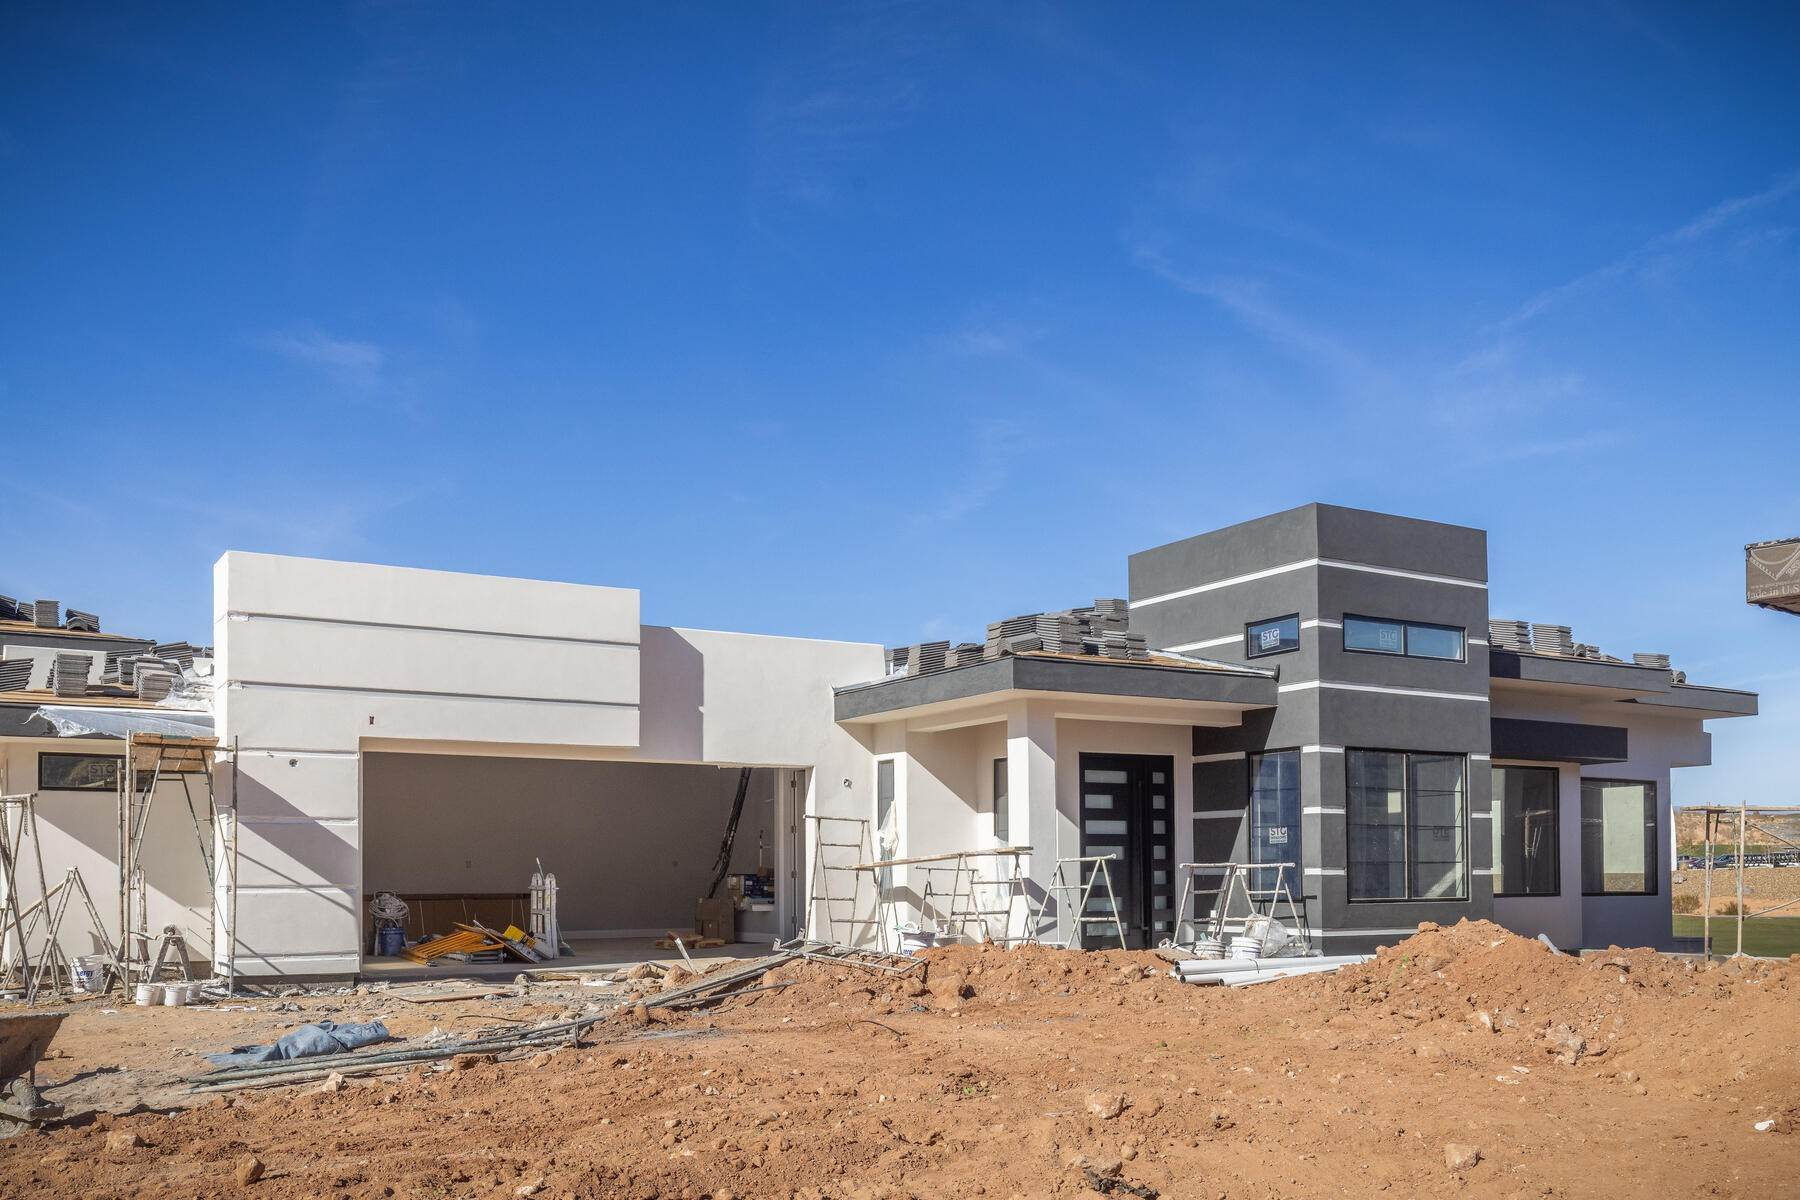 Single Family Homes for Sale at New Custom Golf Course Home With Nightly Rental 1498 W Torrey Pines Drive, #36 Hurricane, Utah 84737 United States